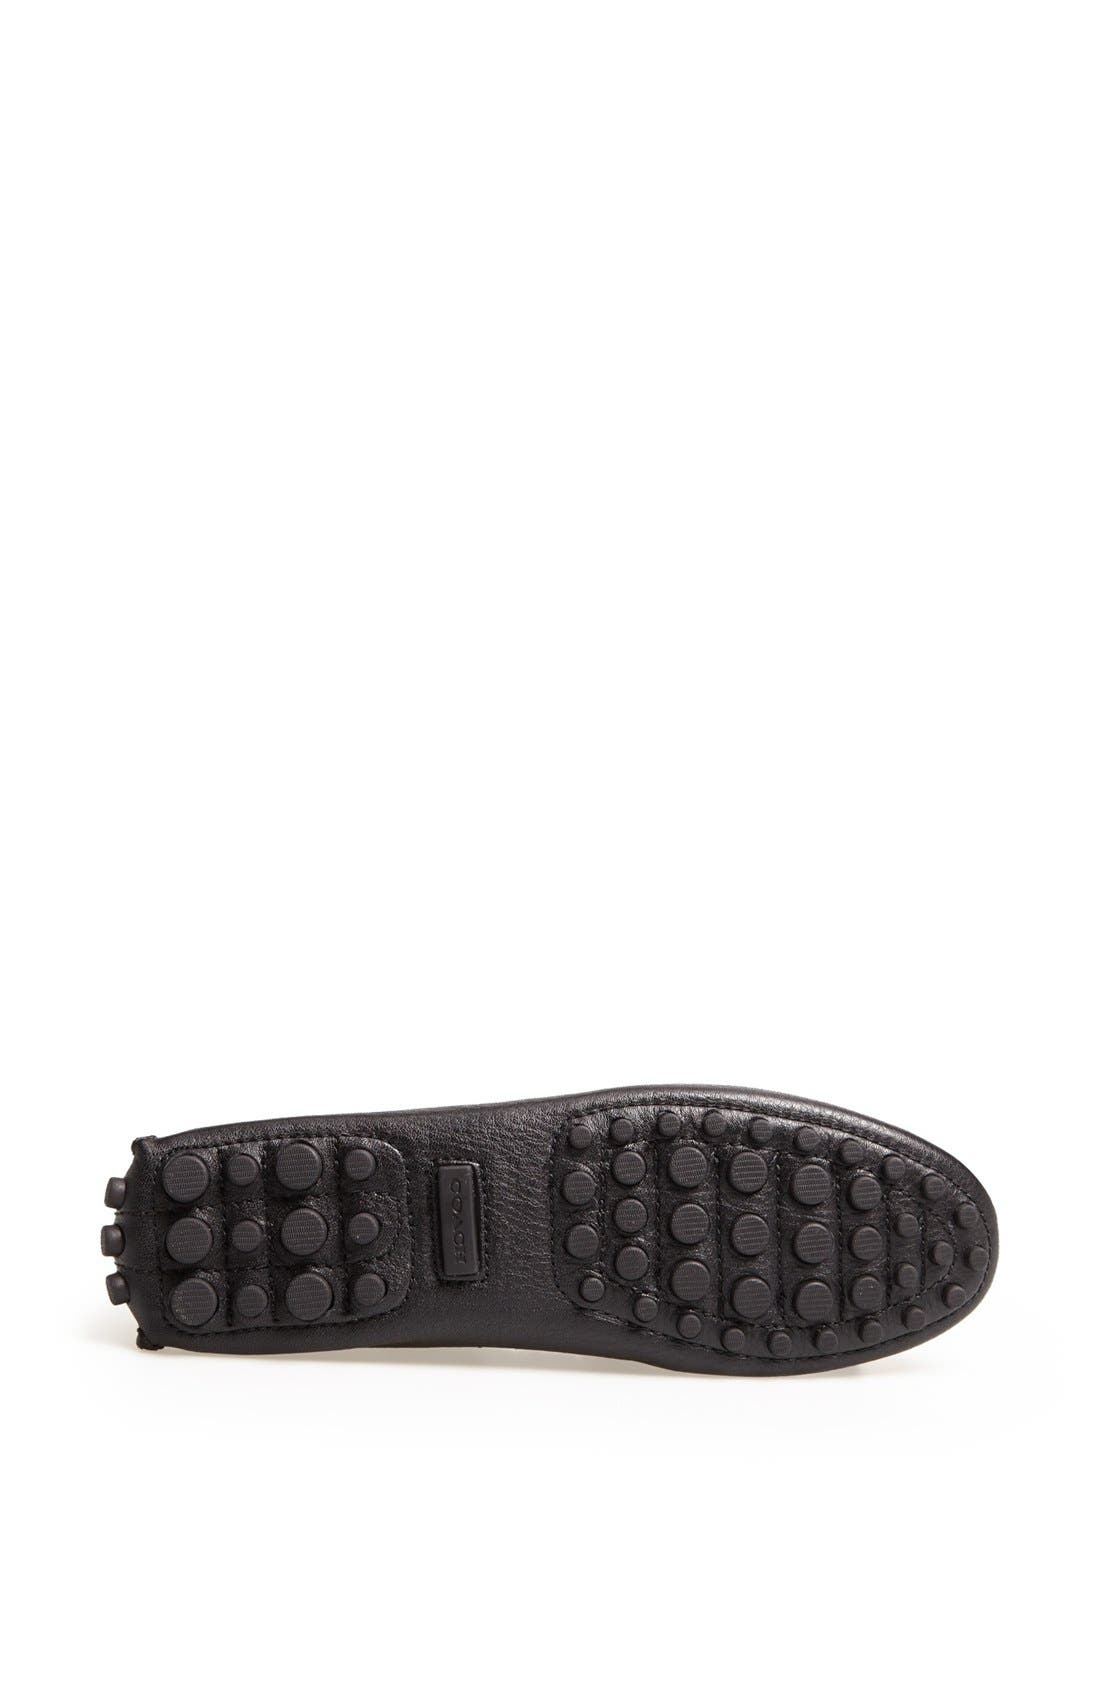 'Nadia' Leather Driving Loafer,                             Alternate thumbnail 4, color,                             001